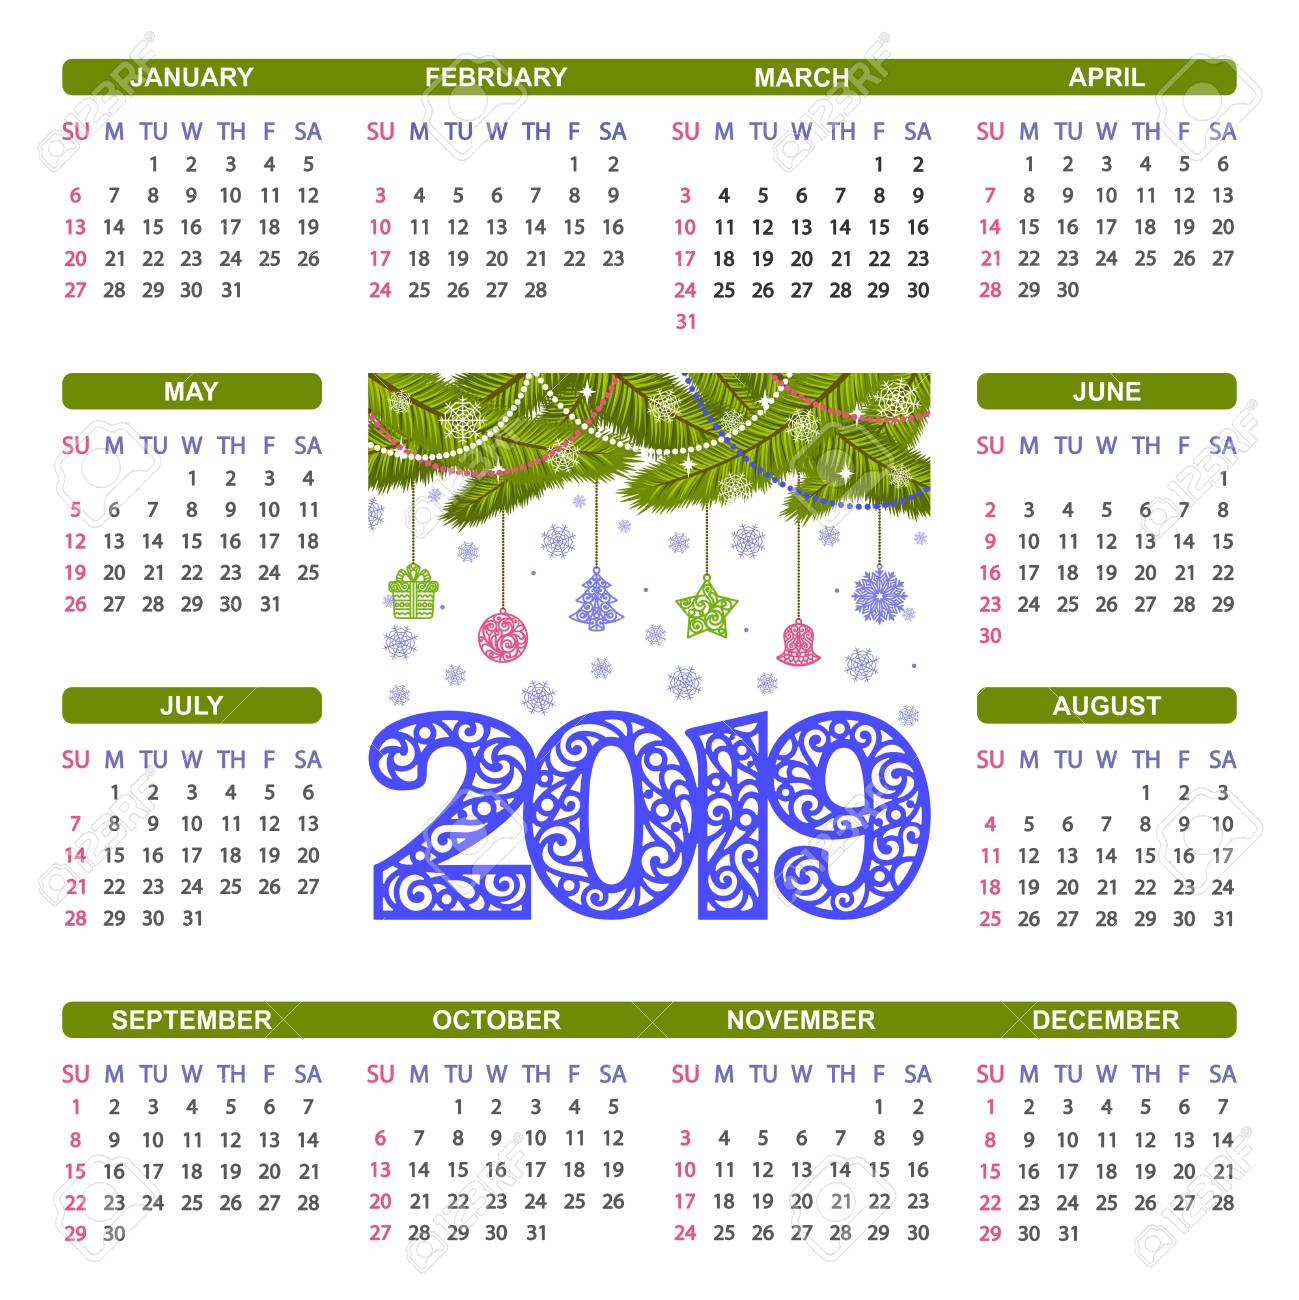 Christmas 2019 Calendar.Colorful Square Calendar 2019 With Snowflakes Christmas Tree